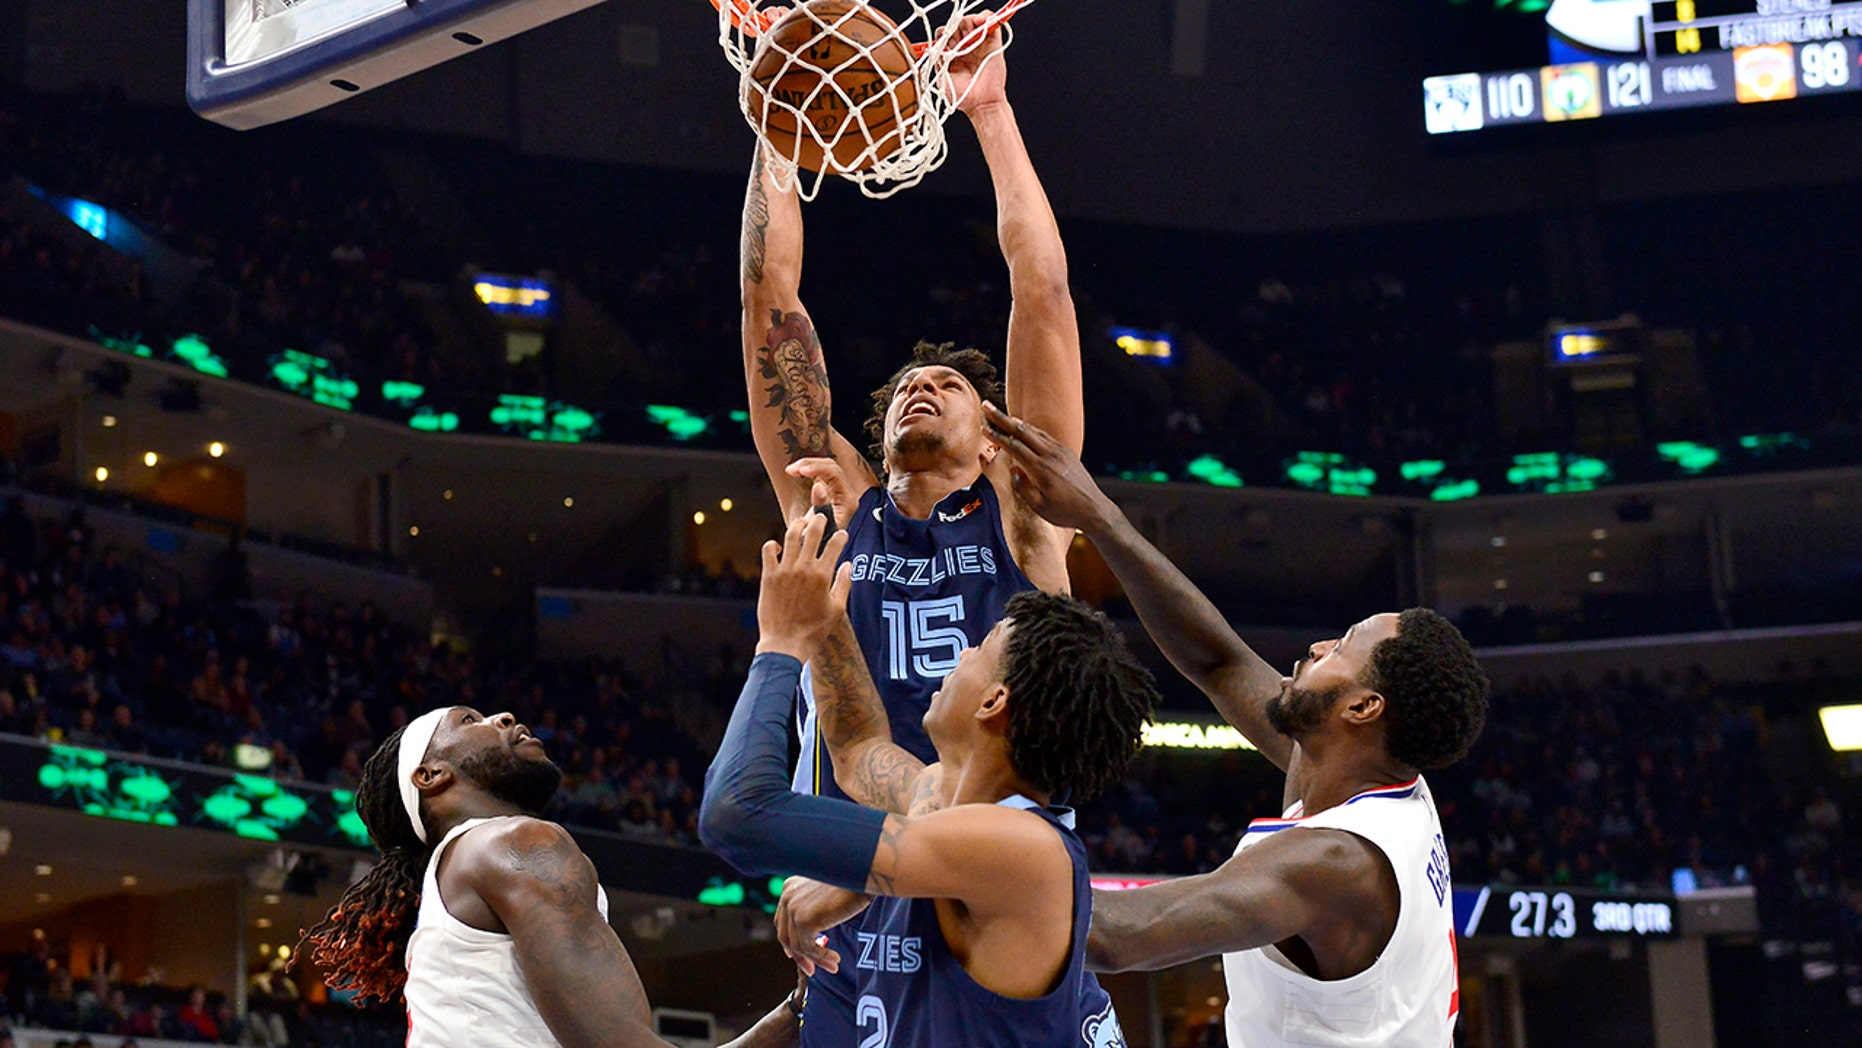 Memphis Grizzlies forward Brandon Clarke (15) dunks as Los Angeles Clippers forwards Montrezl Harrell, left, and JaMychal Green and Grizzlies guard Ja Morant watch during the second half of an NBA basketball game Wednesday, Nov. 27, 2019, in Memphis, Tenn. (AP Photo/Brandon Dill)